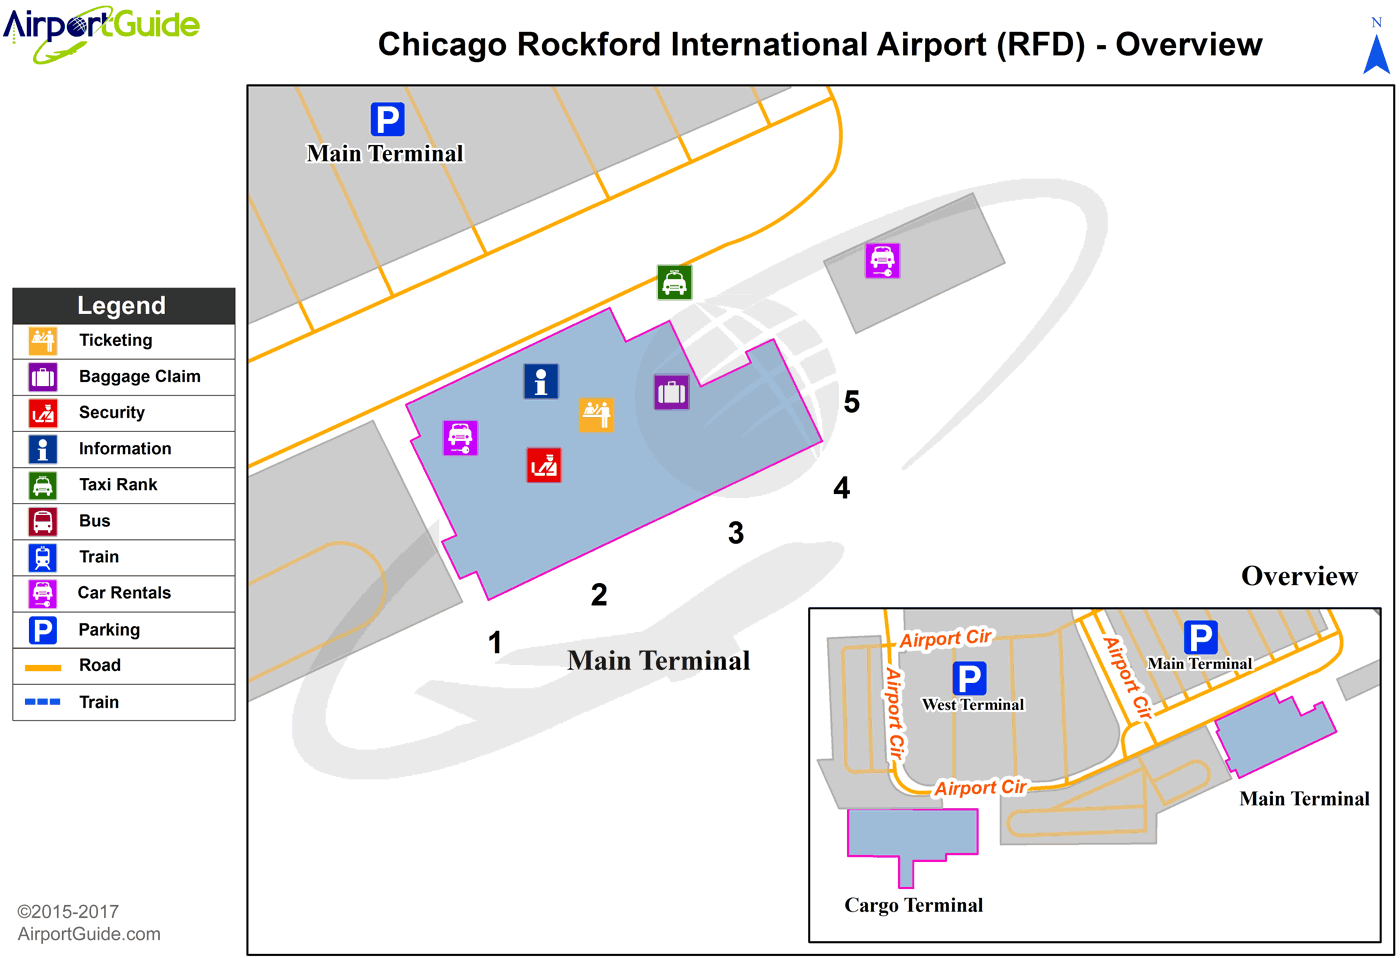 Chicago/Rockford - Chicago/Rockford International (RFD) Airport Terminal Map - Overview